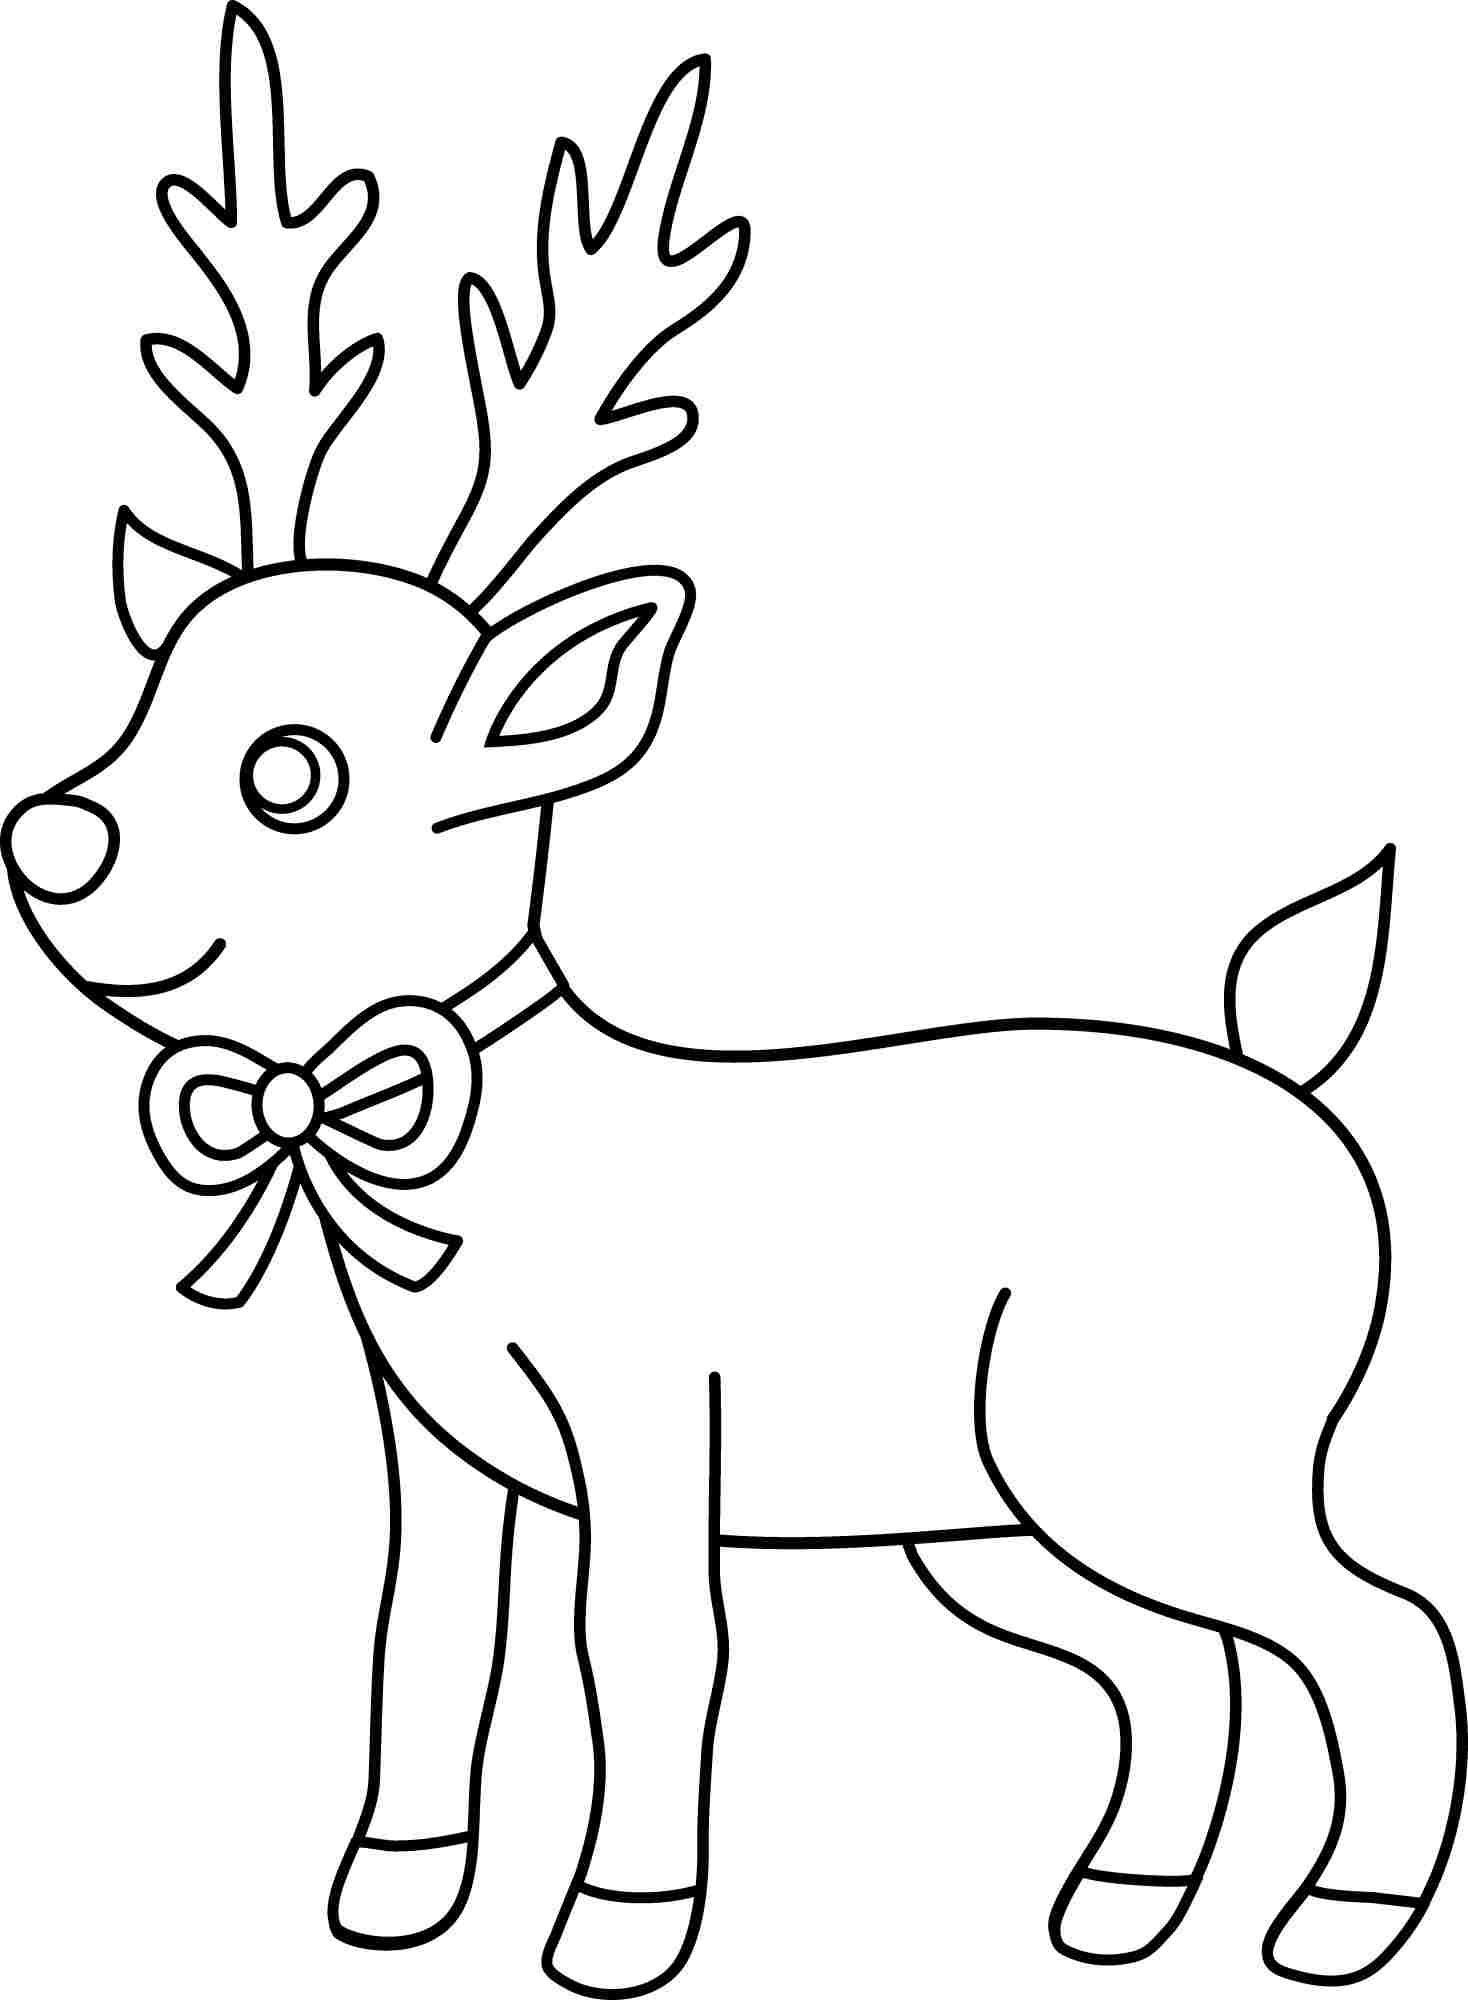 Easy Santa Coloring Pages With Christmas For Kids Has Baby Jesus Ornaments Id